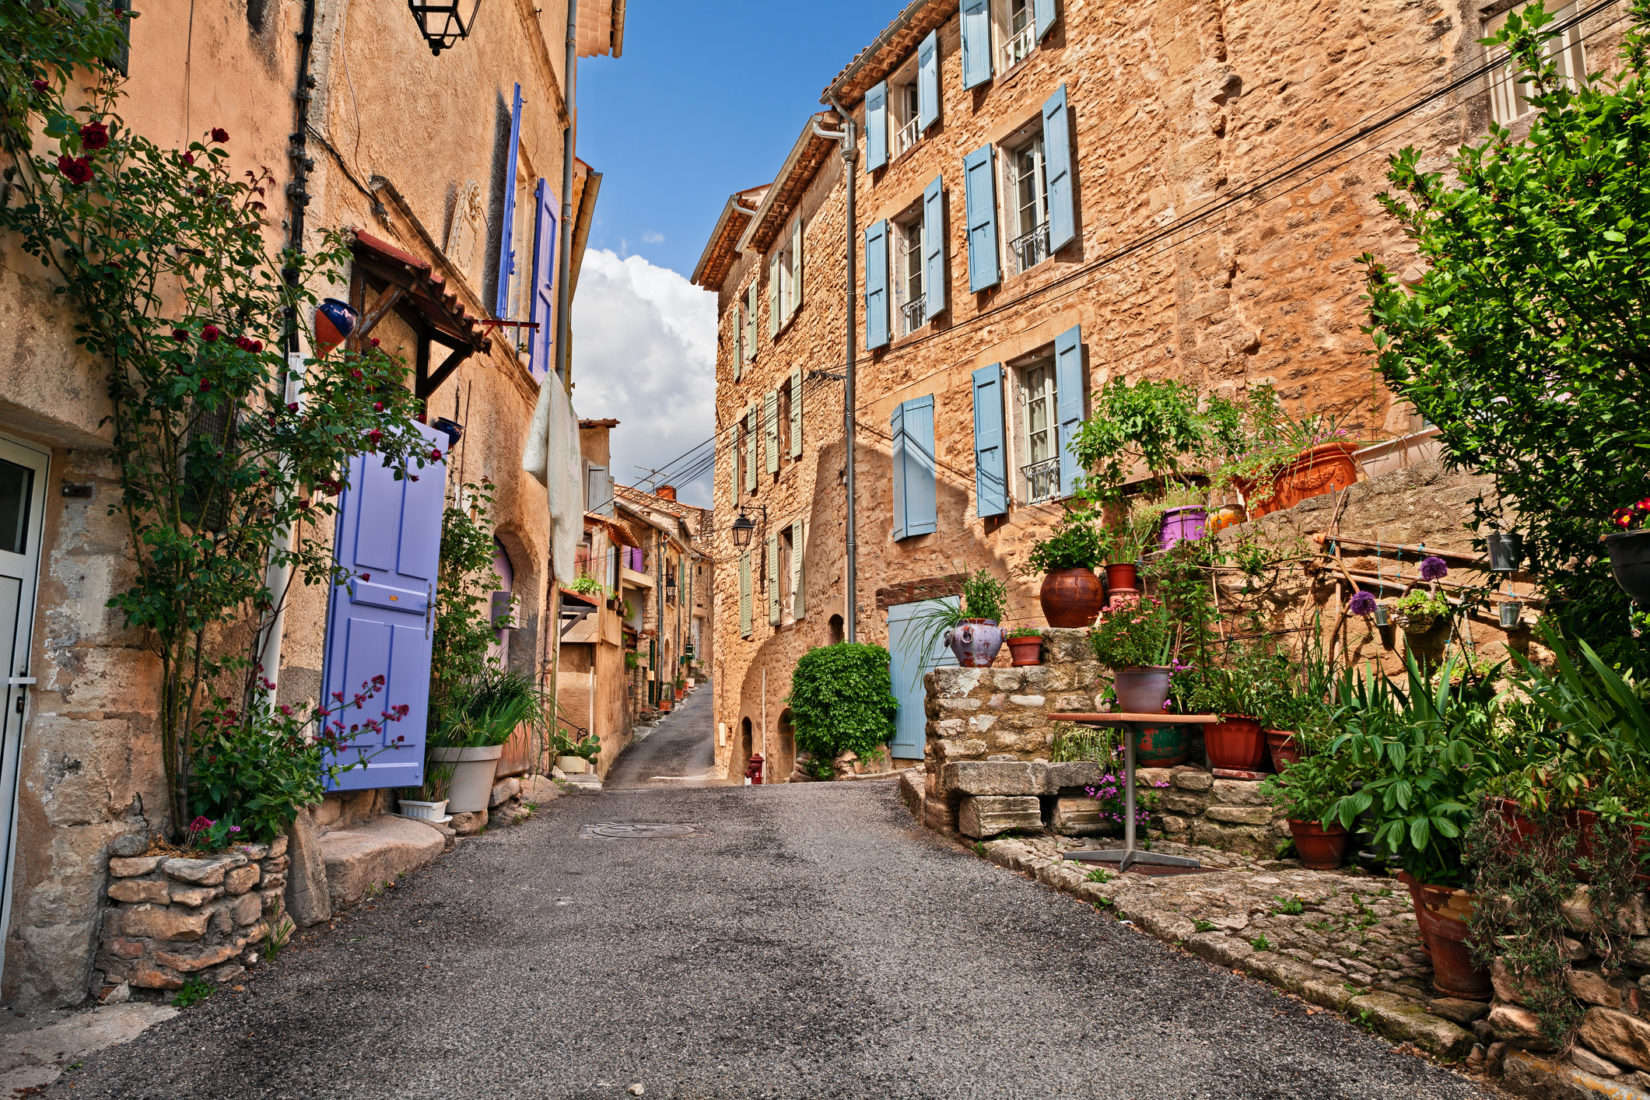 Mane, Forcalquier, Provence, France: picturesque ancient alley in the old town with plants and flowers